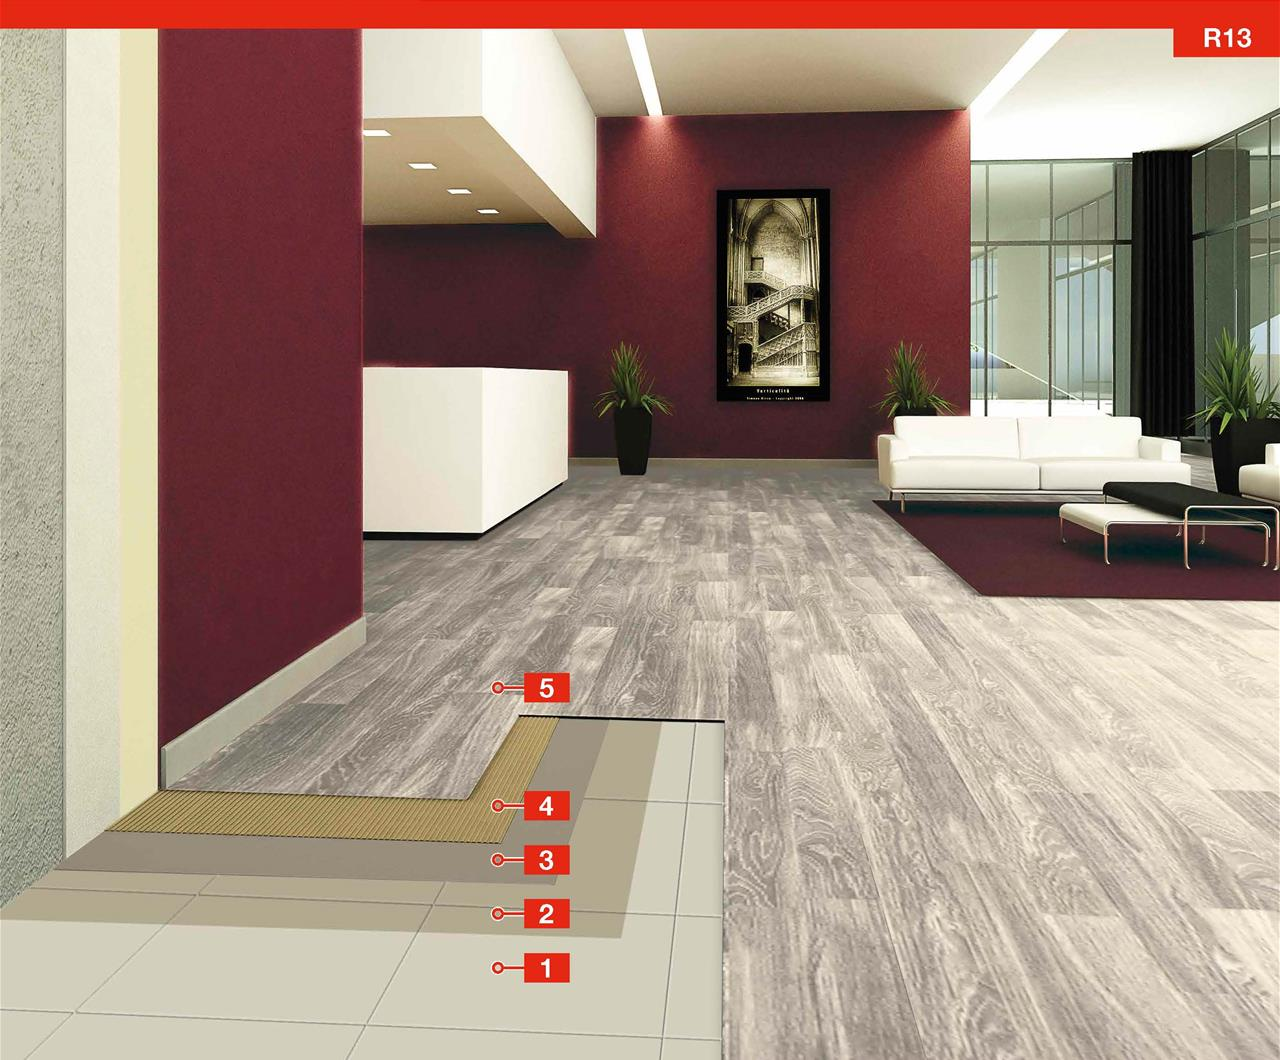 System For The Installation Of Lvt Planks Over Existing Ceramic